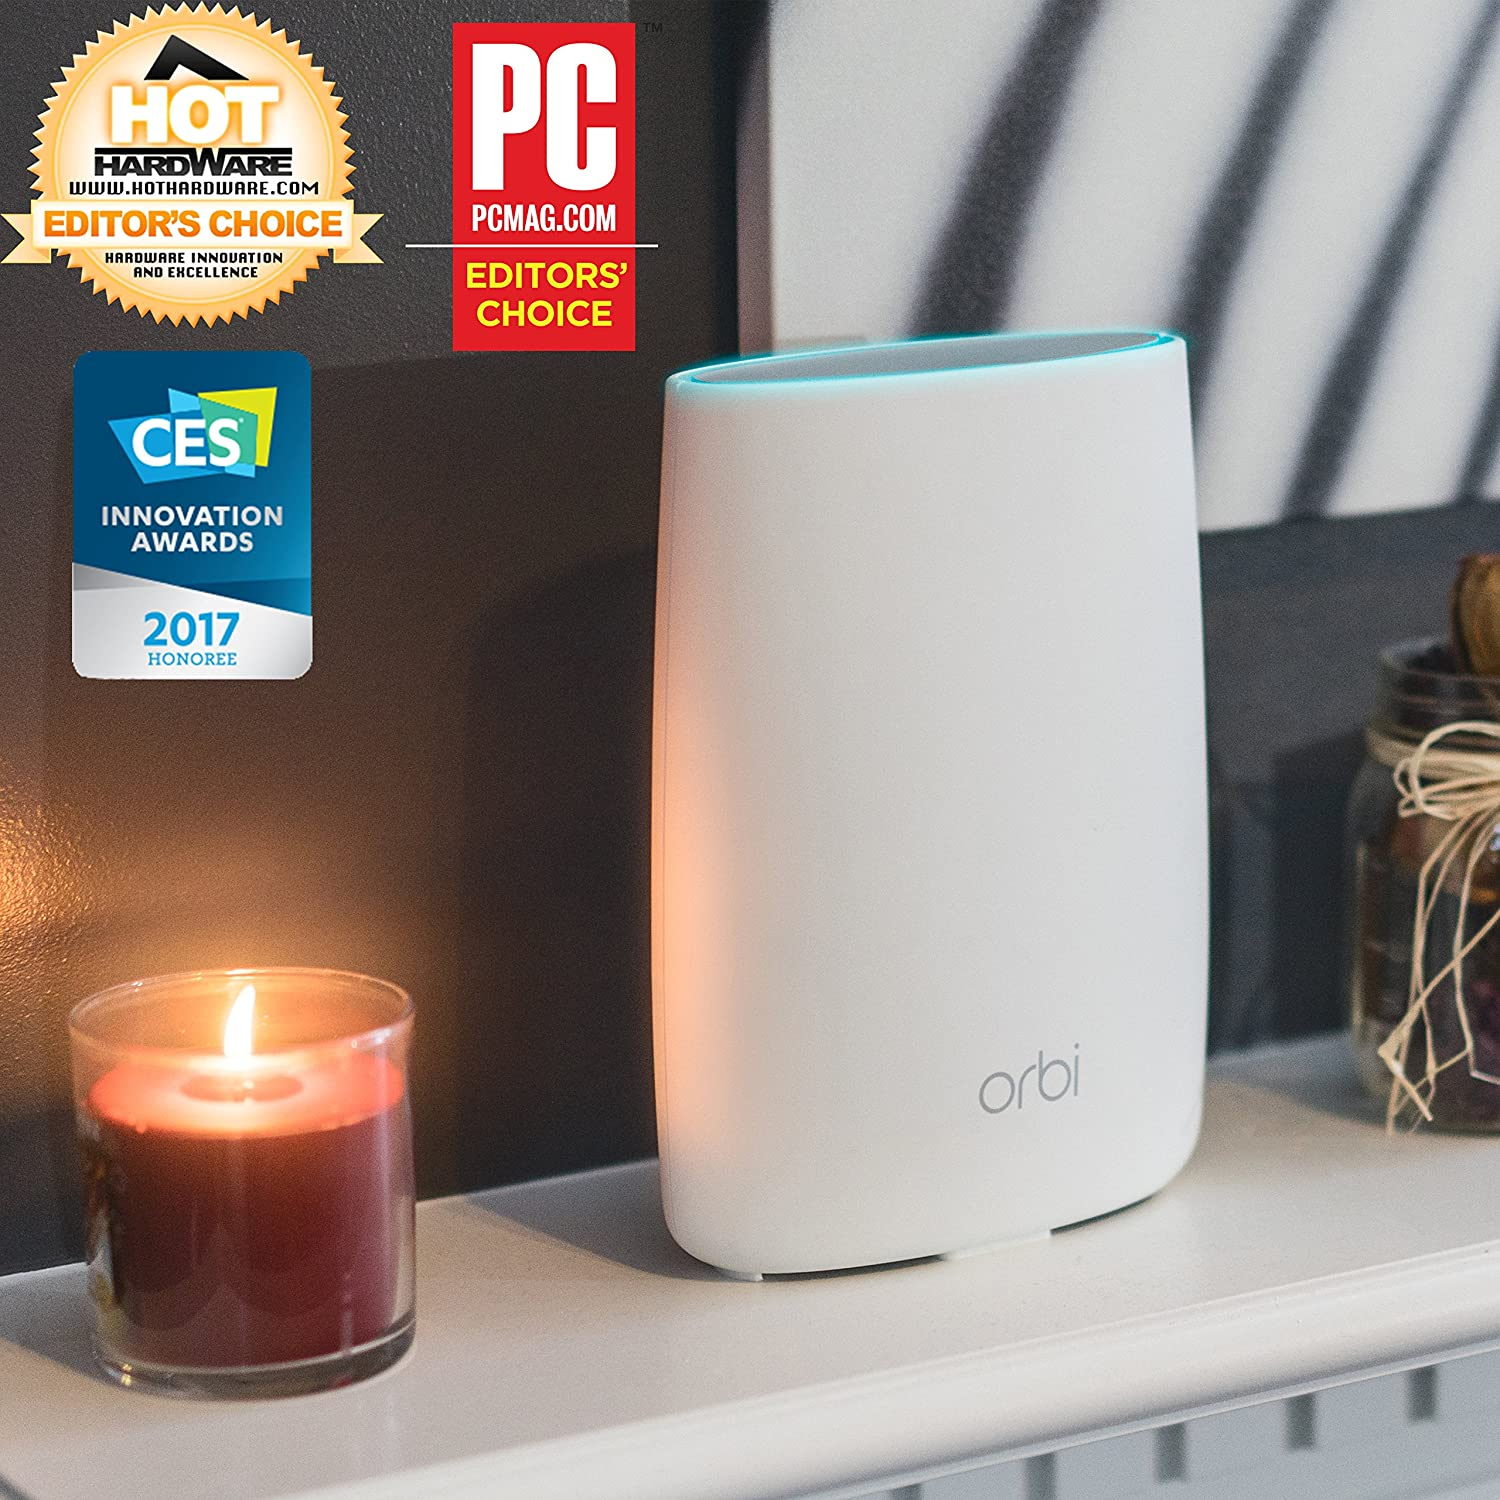 NETGEAR Orbi WiFi System Black Friday Deal 2019